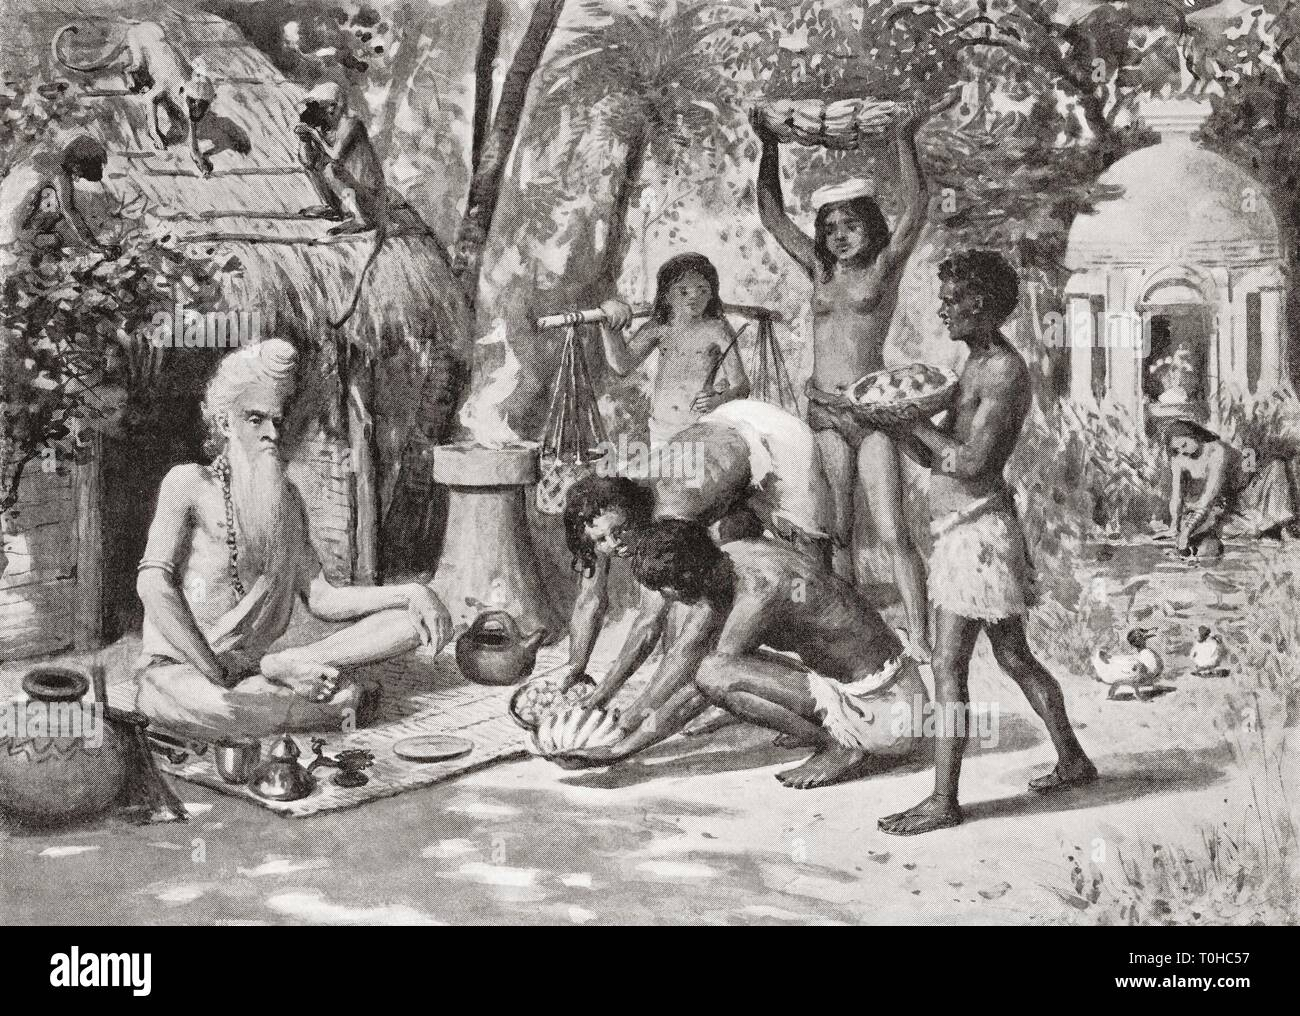 old vintage photo of hermit in ancient India - Stock Image